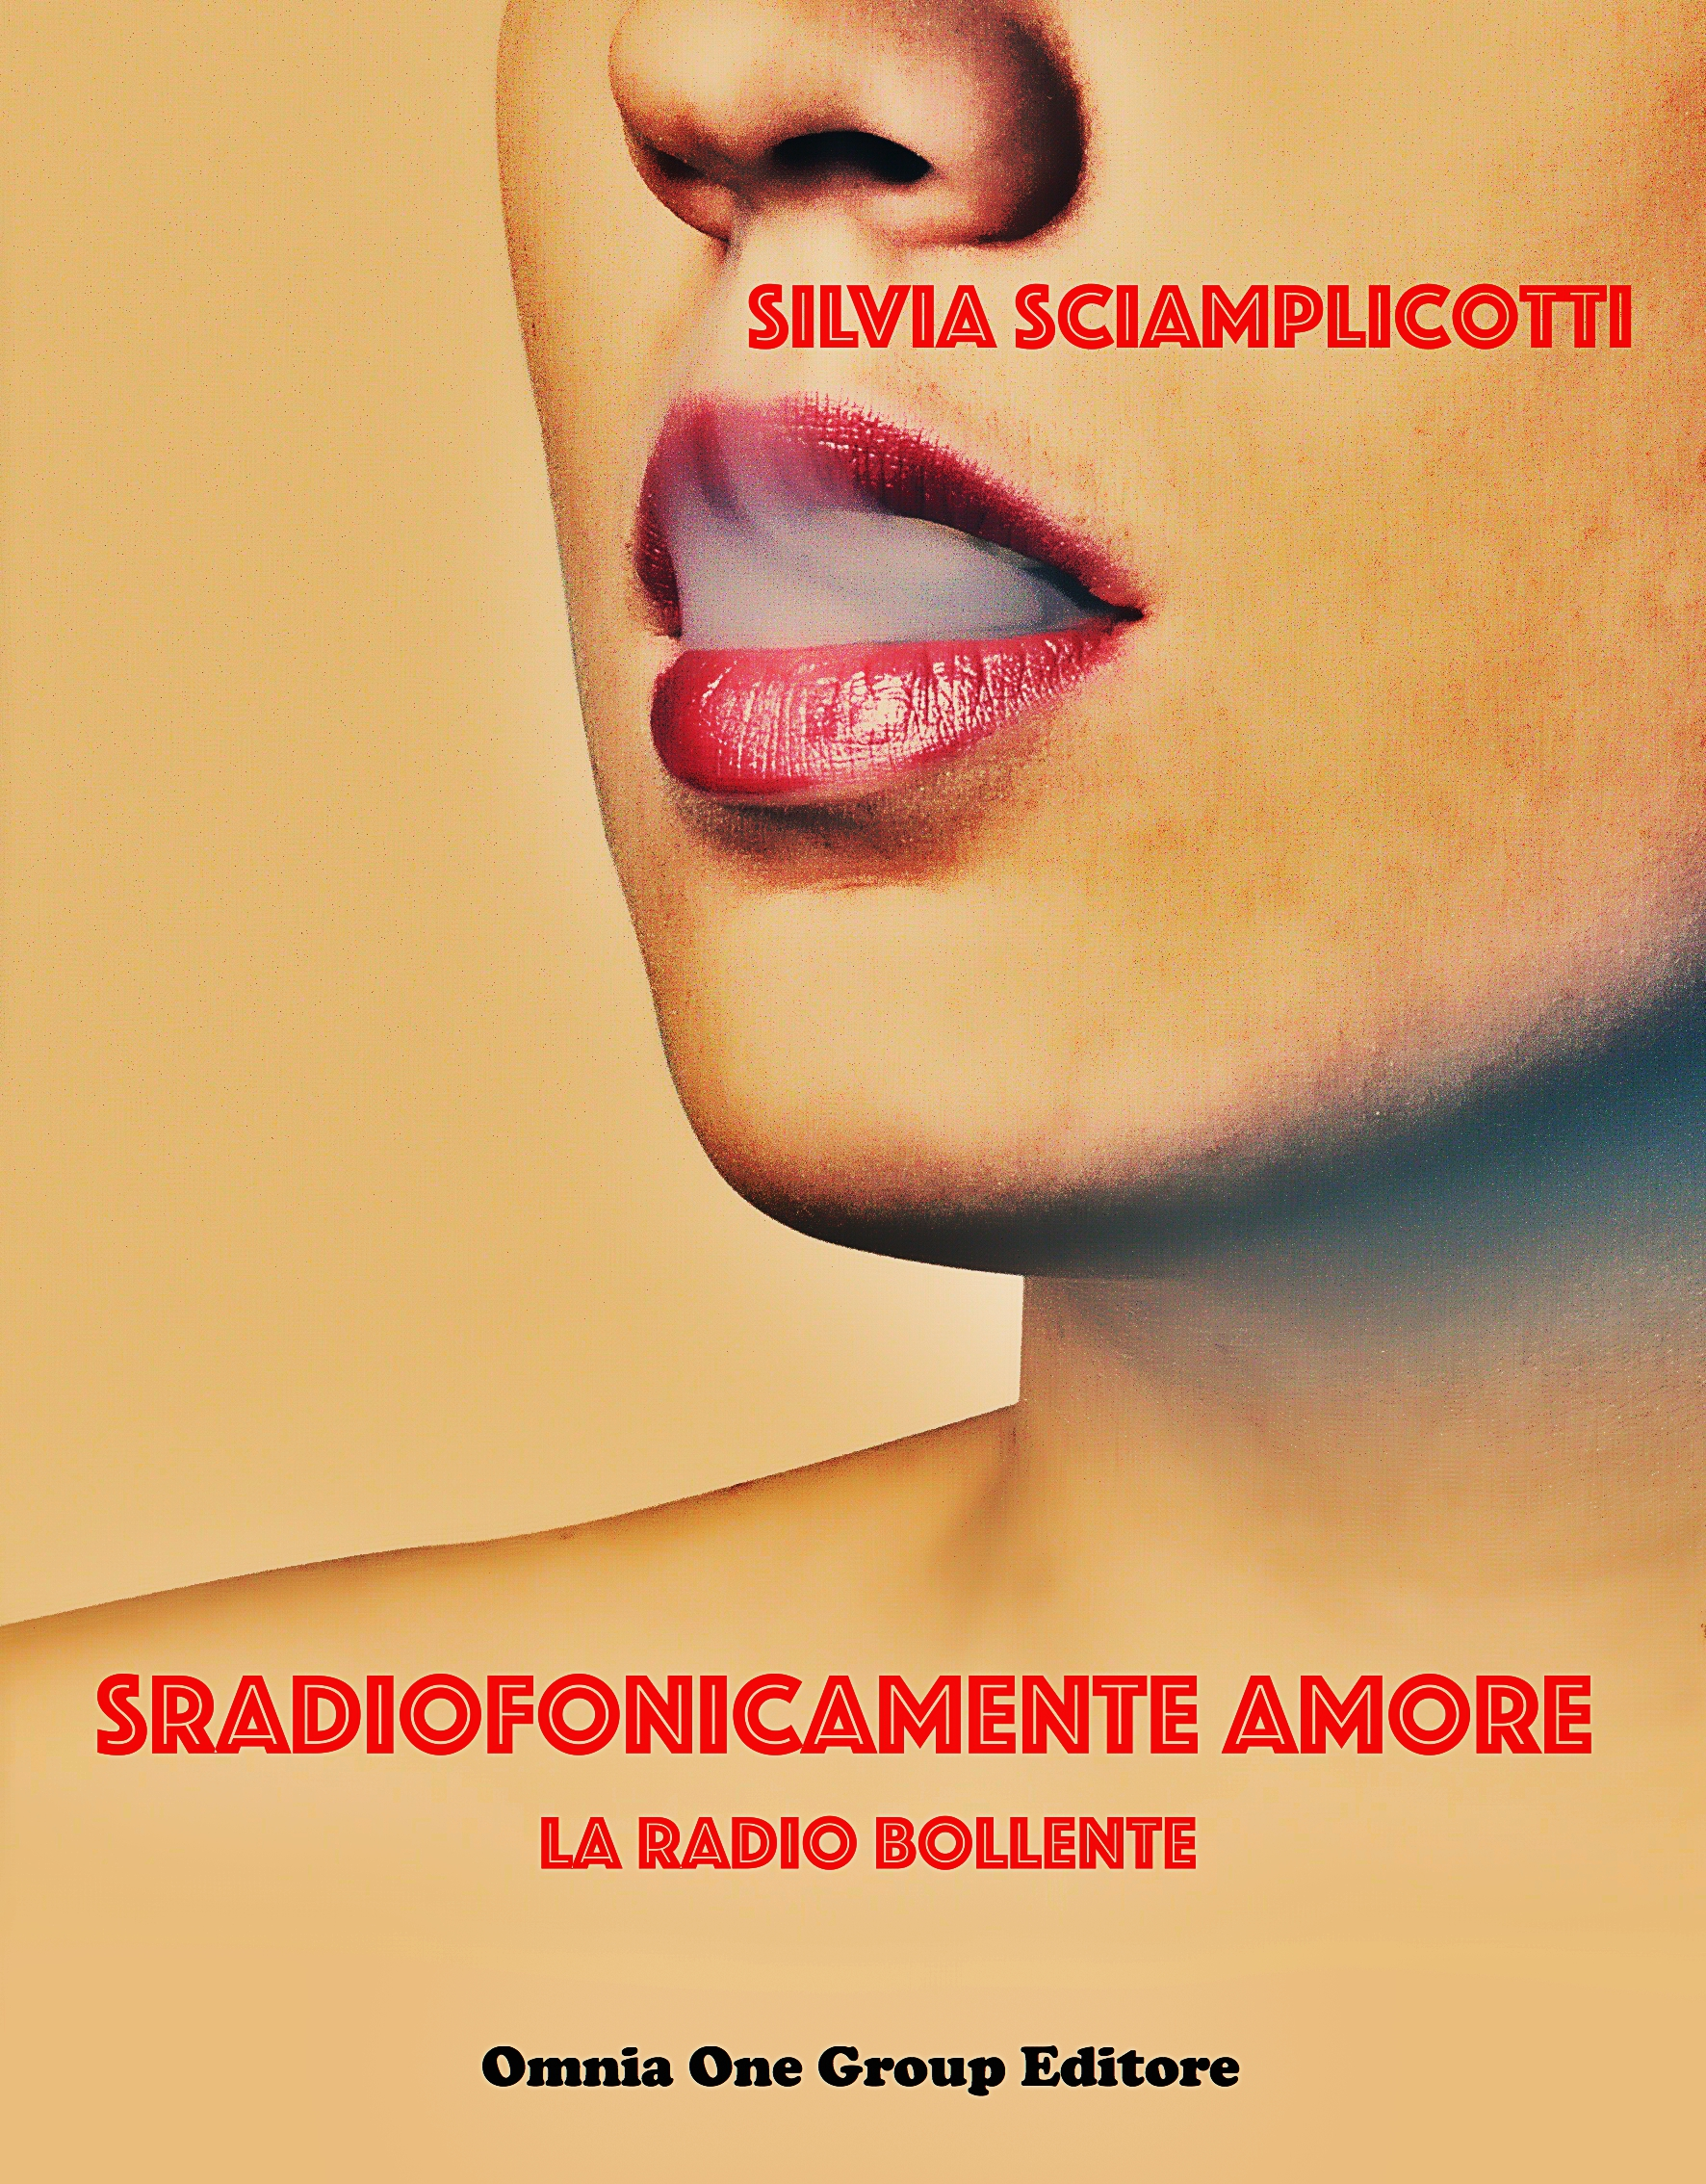 Sradiofonicamente Amore.jpg